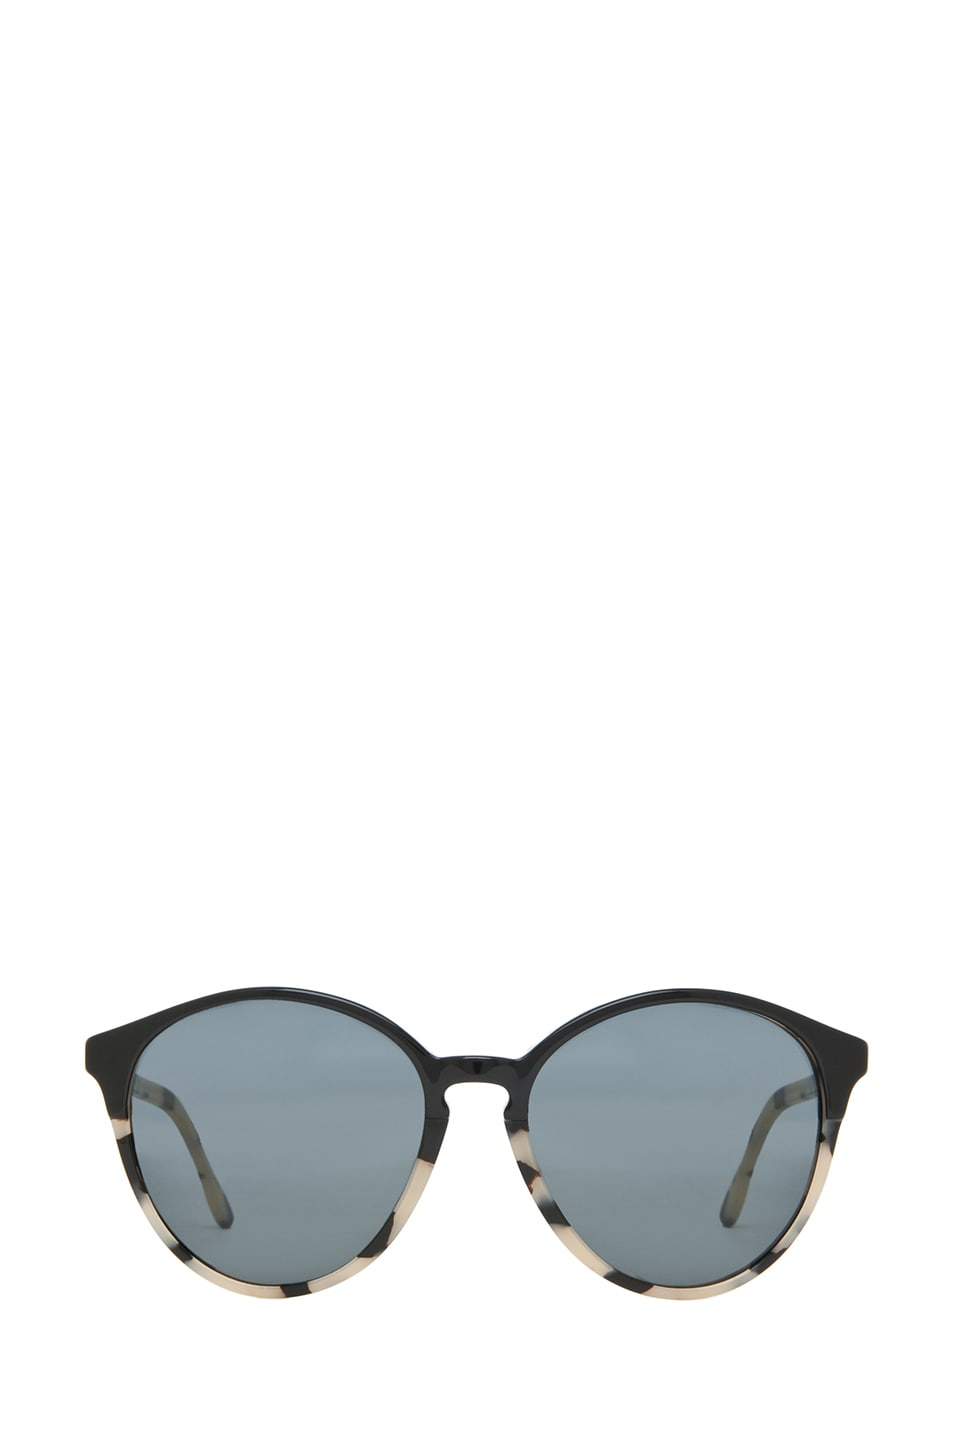 Image 1 of Stella McCartney Sunglasses in Black & Spotty Tortoise